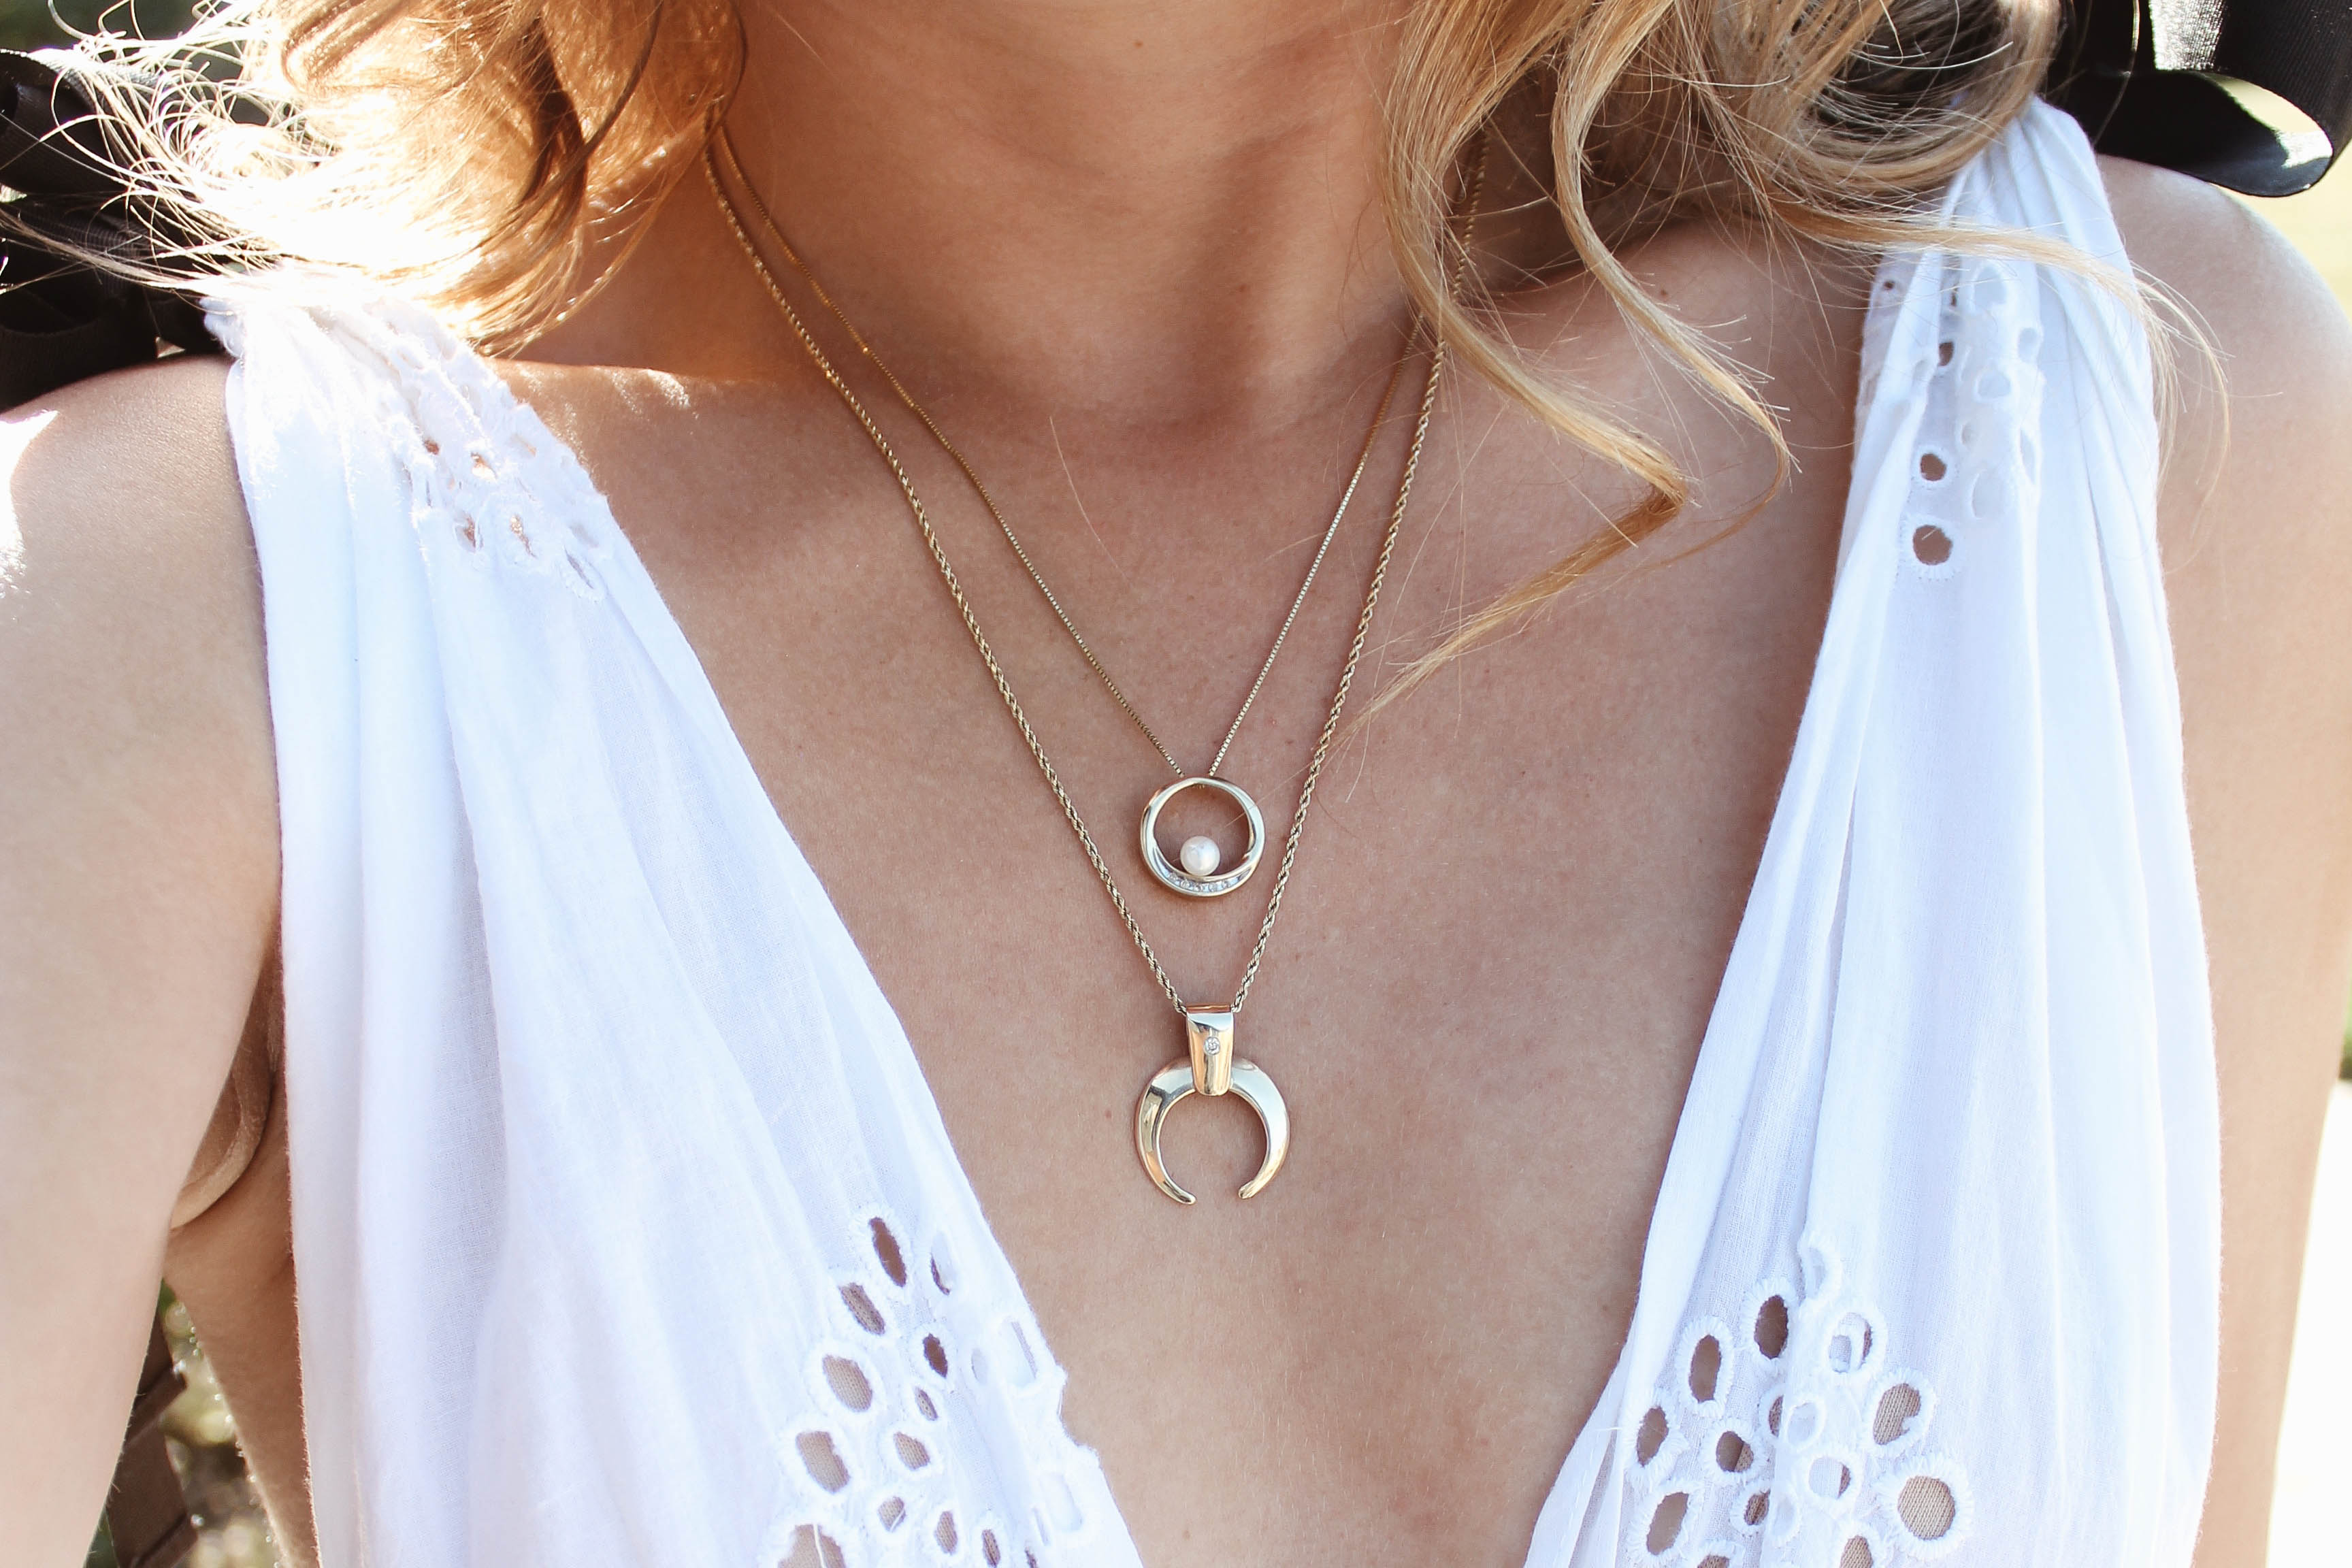 jewelry picks at affordable price points